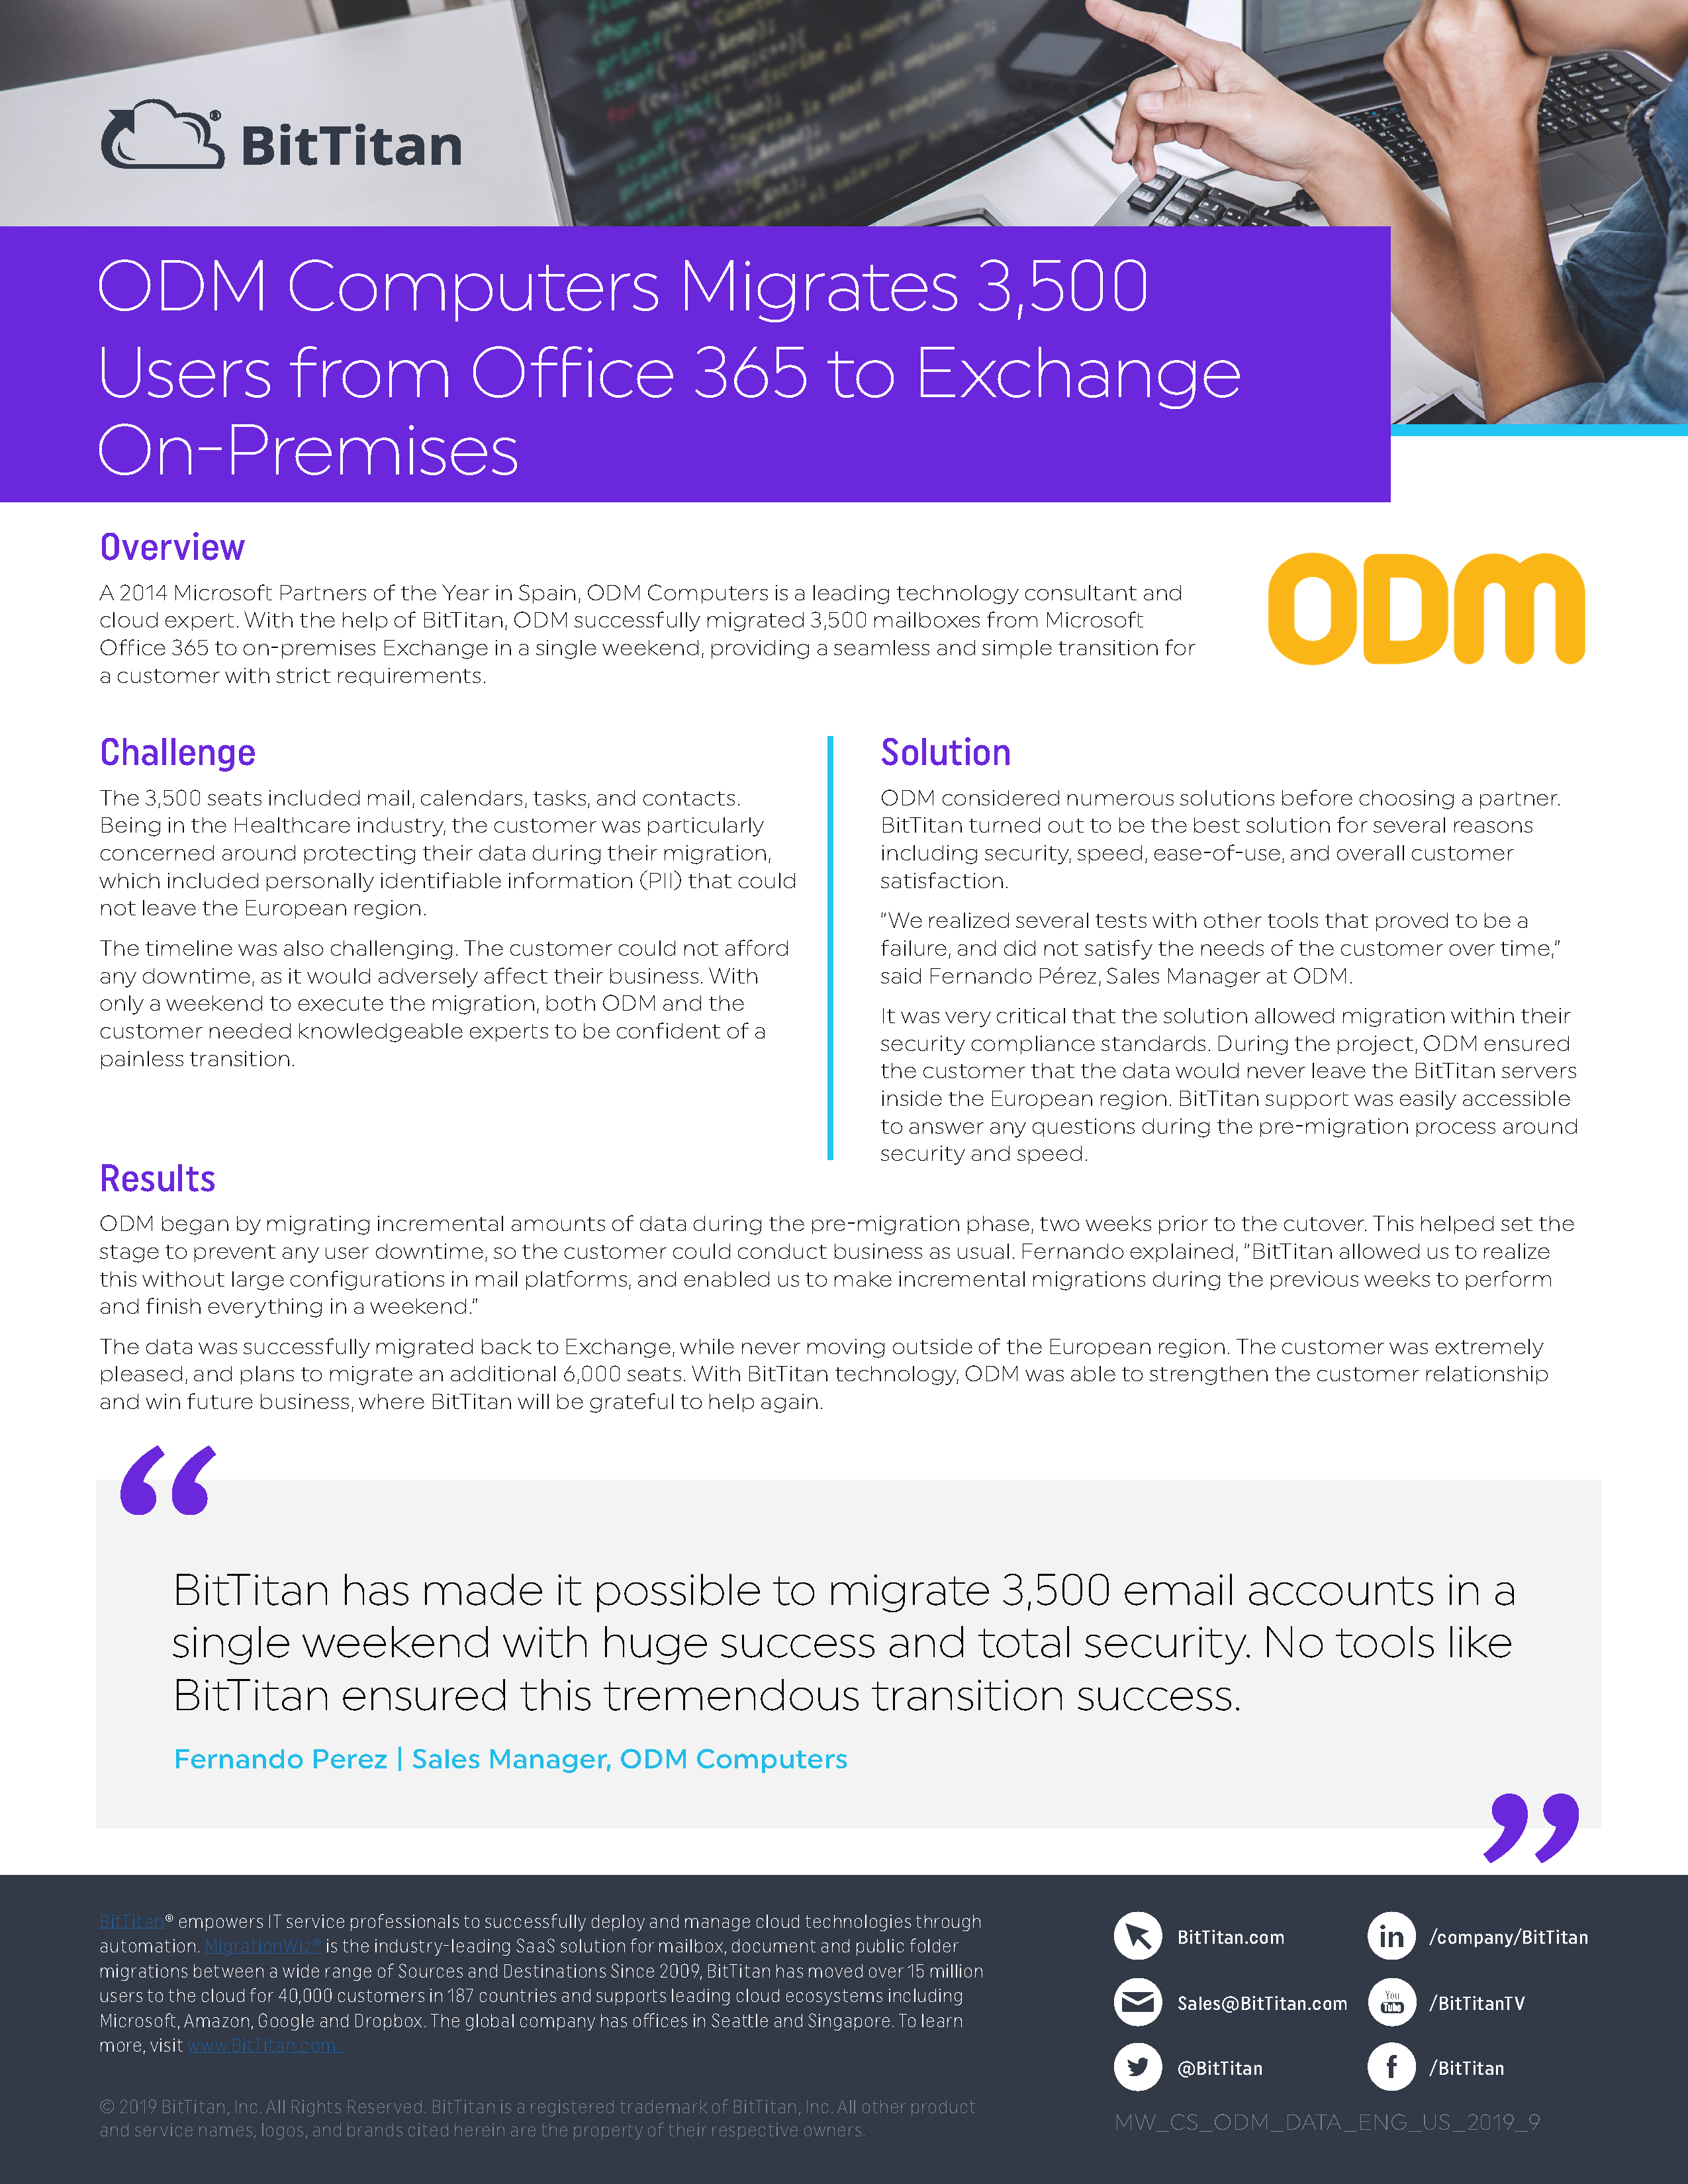 ODM Computers: Migration Case Study